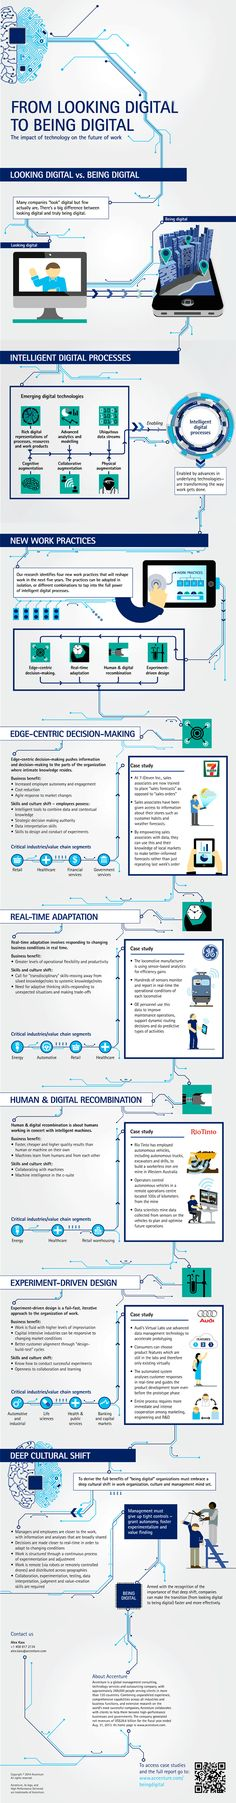 From 'looking digital' to 'being digital' infographic from Accenture Digital.